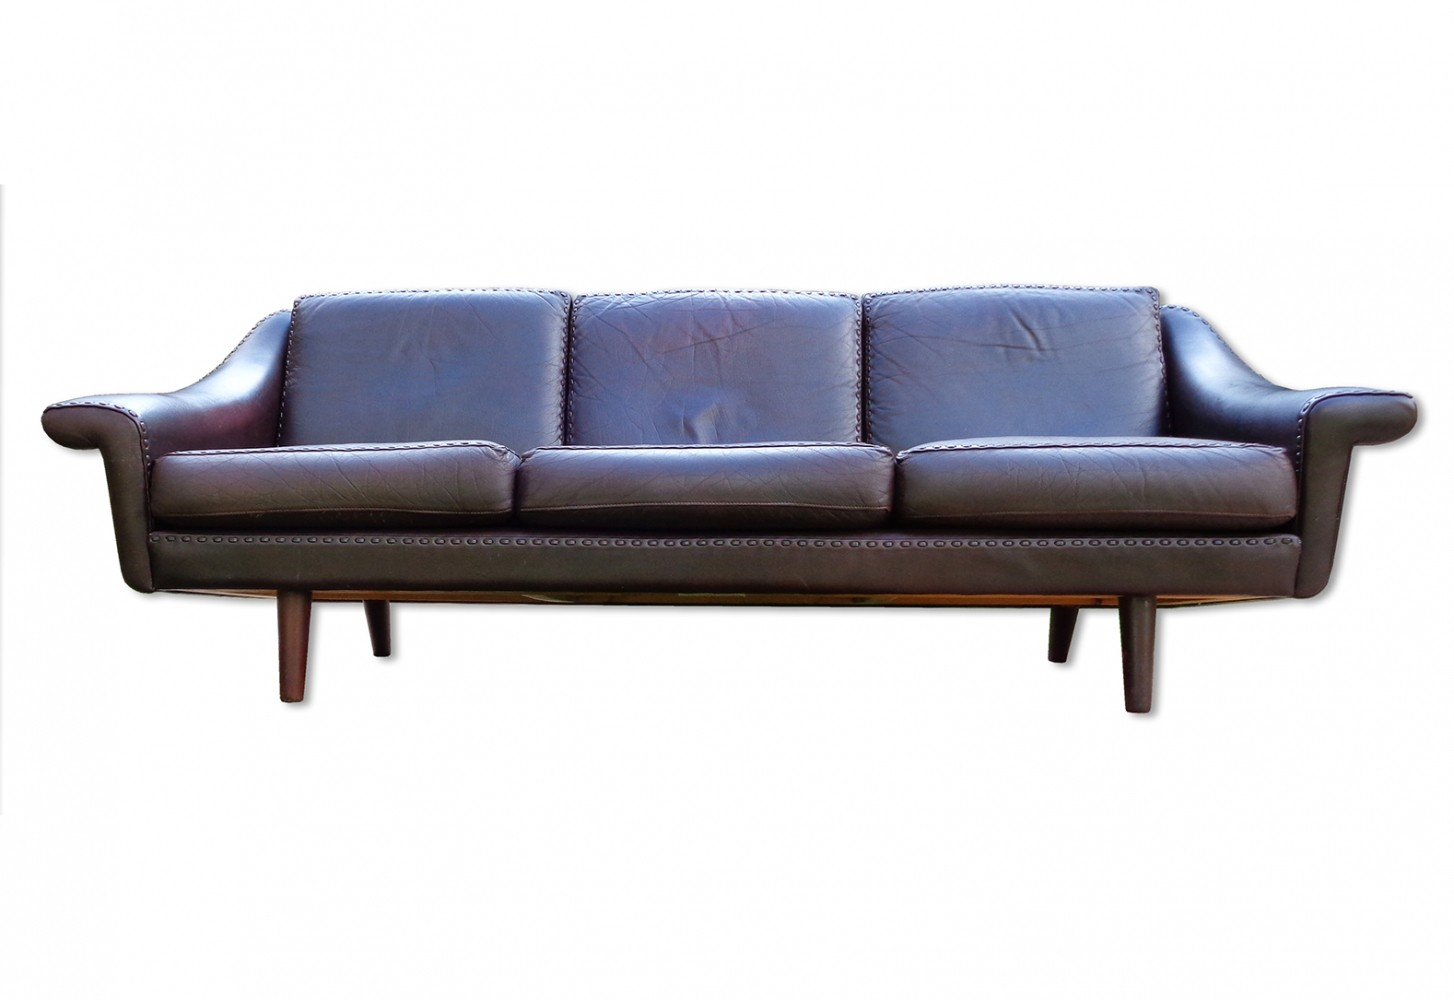 sofa by de sede design team for de sede 1960s 67290. Black Bedroom Furniture Sets. Home Design Ideas